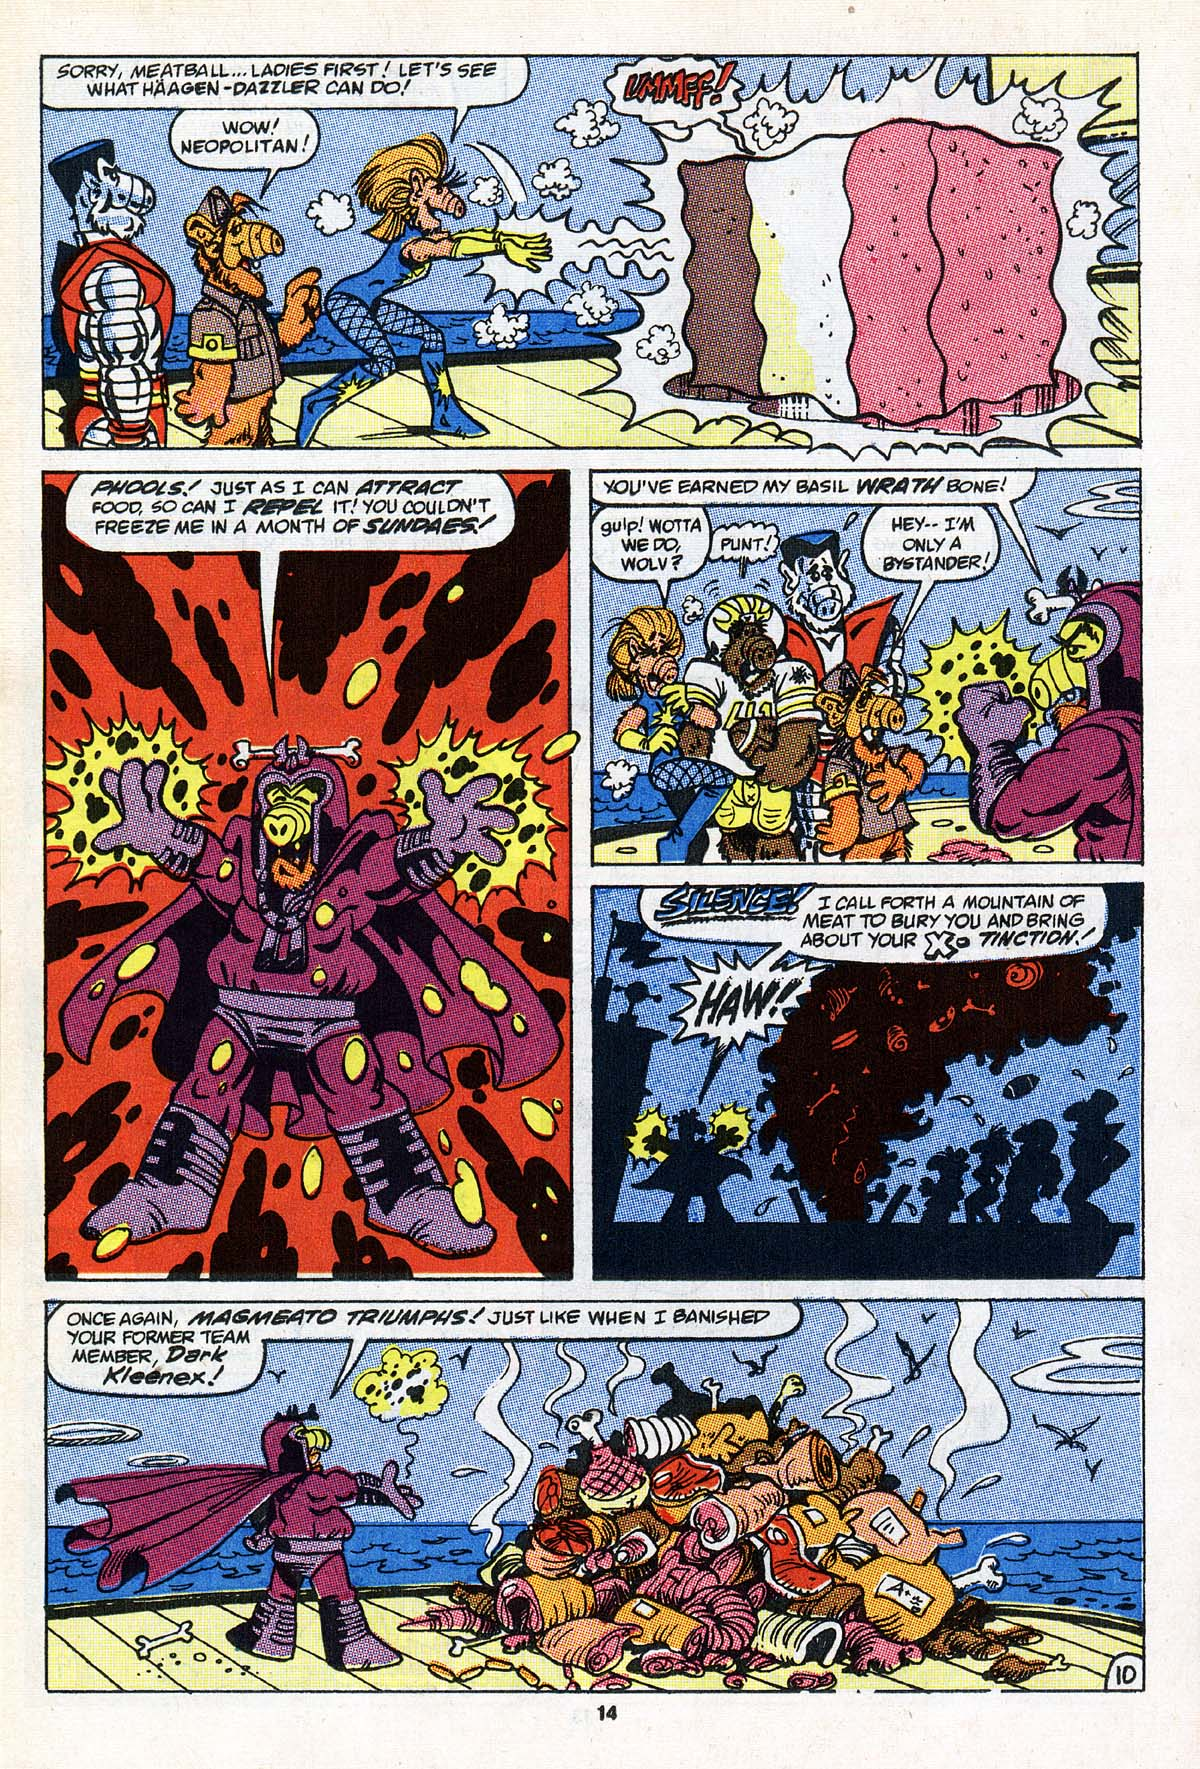 Read online ALF comic -  Issue #22 - 11